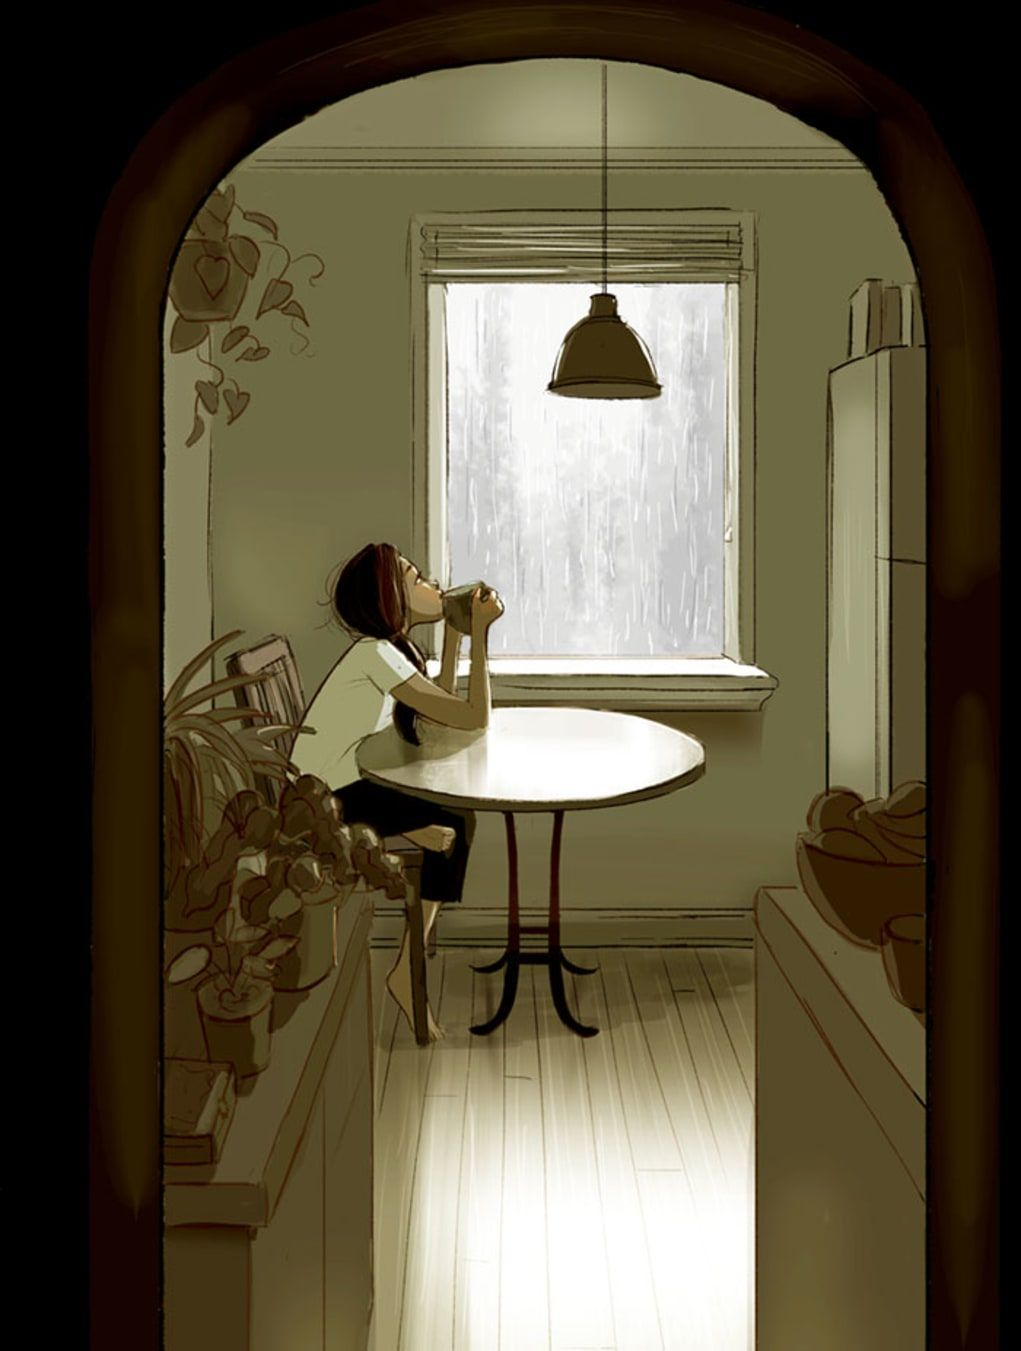 20 Illustrations That Perfectly Capture The Happiness Of Living Alone Blazepress Alone Art Girly Art Aesthetic Art